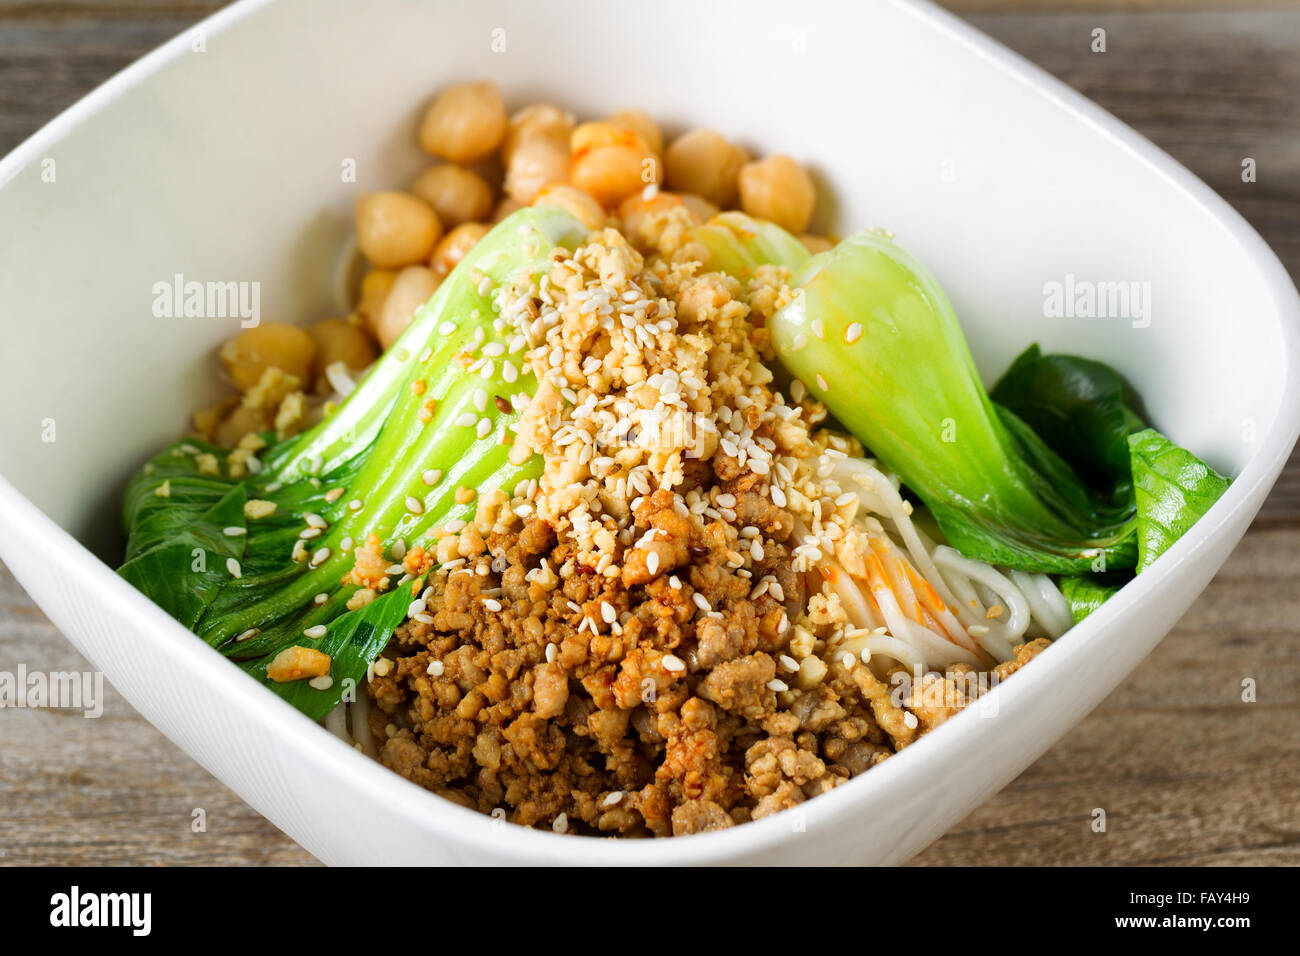 Close up front view of crispy spicy chicken with noodles and bok choy in white bowl. Selective focus in middle of - Stock Image